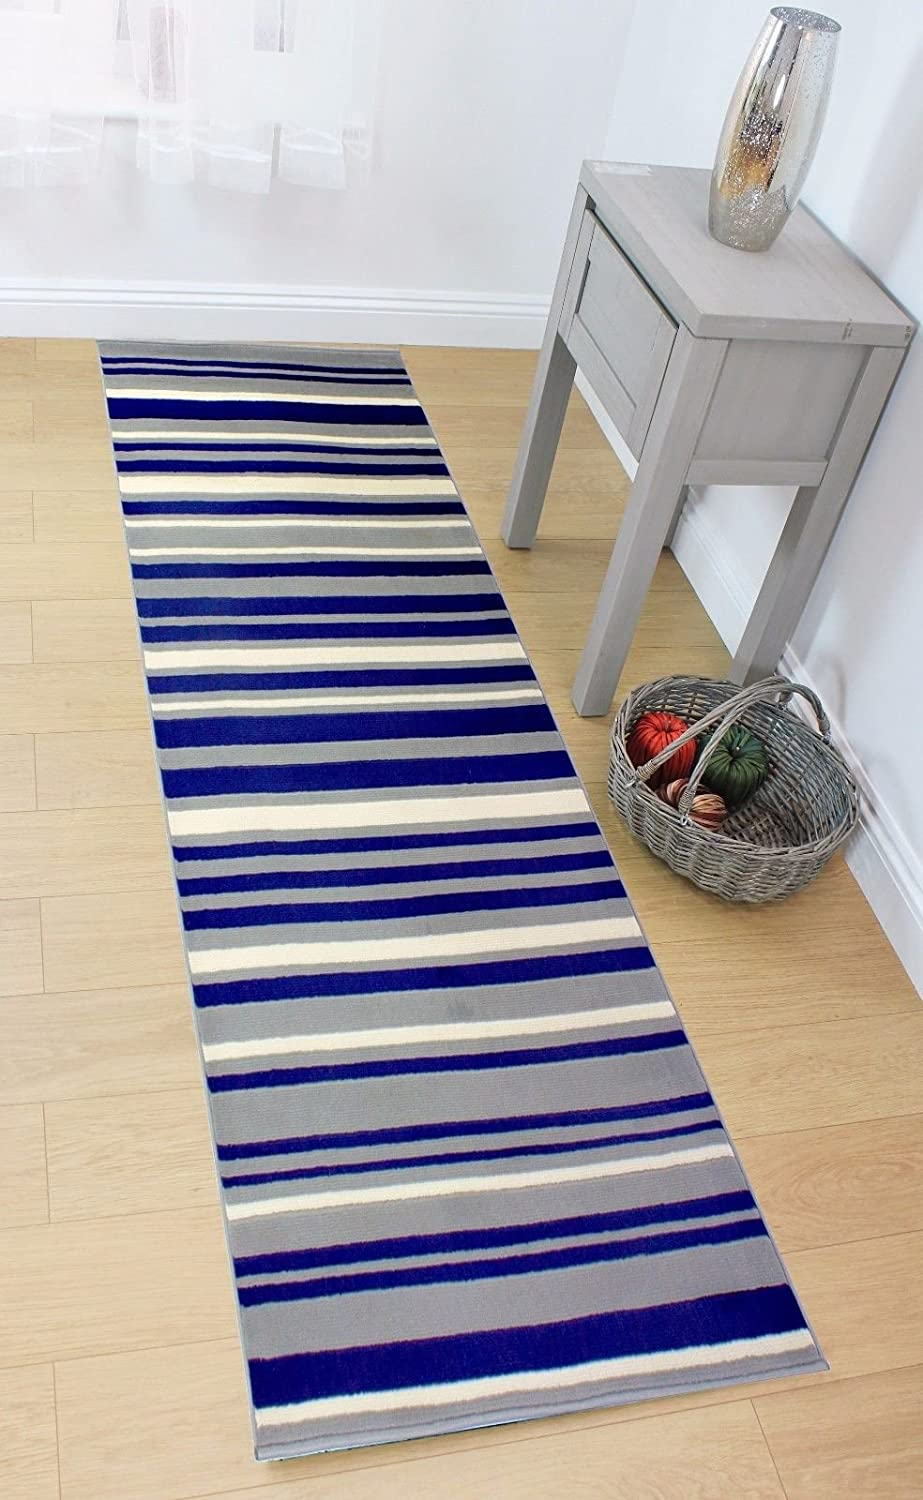 60x220cm Lord of Rugs LONG MODERN TRADITIONAL STRIPED HALLWAY HALL RUNNER RUG IN BLUE GREY IN VARIOUS SIZES 2x73